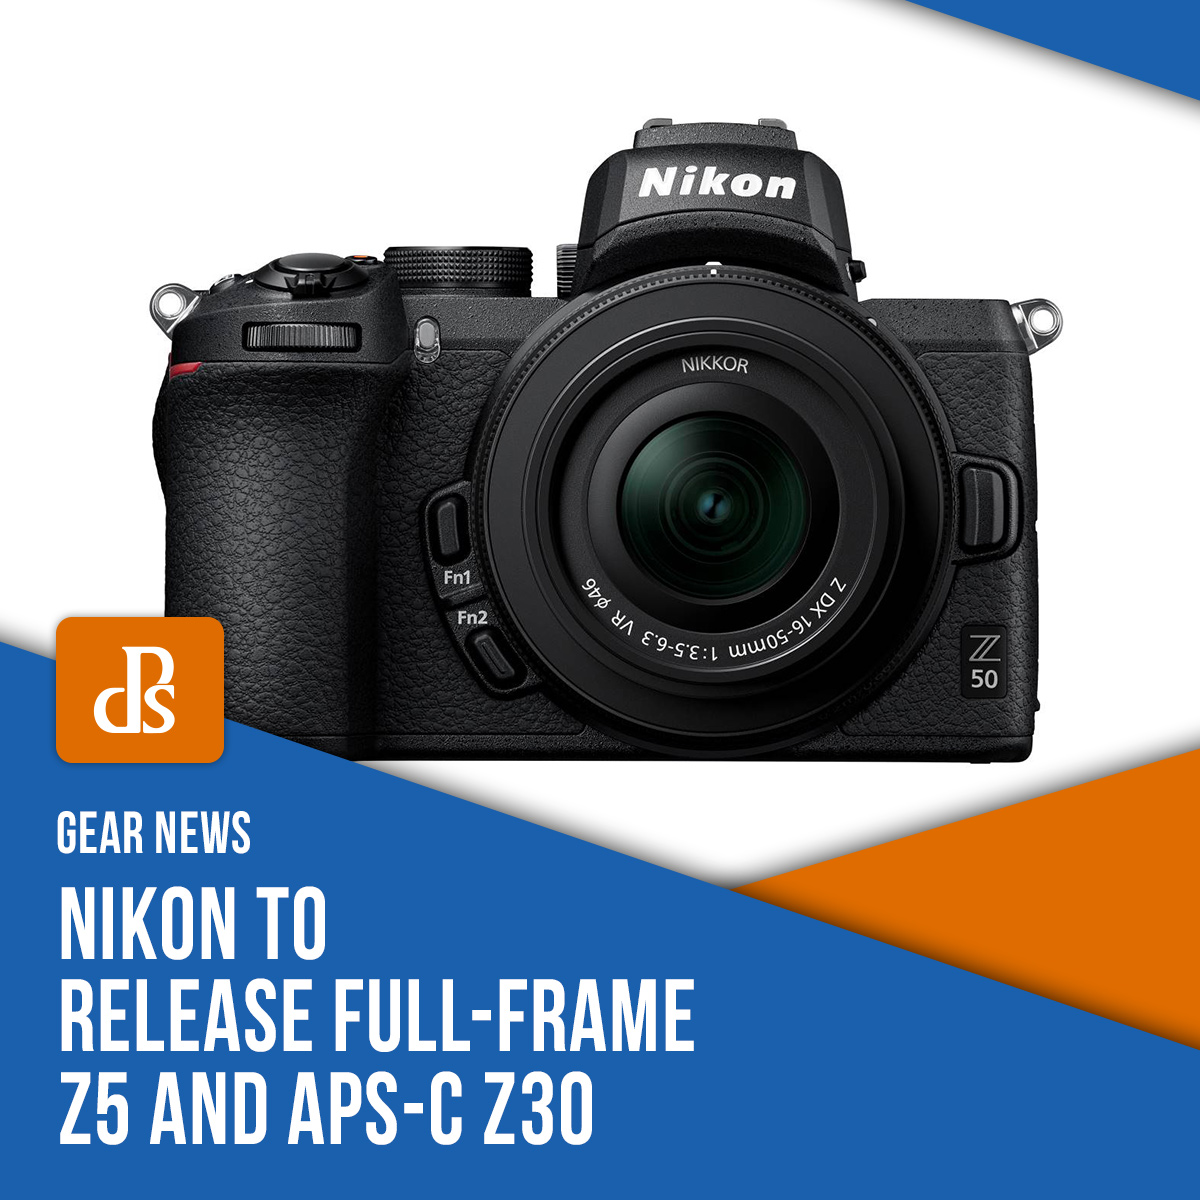 https://i2.wp.com/digital-photography-school.com/wp-content/uploads/2020/06/dps-nikon-z5-and-z30-news.jpg?ssl=1